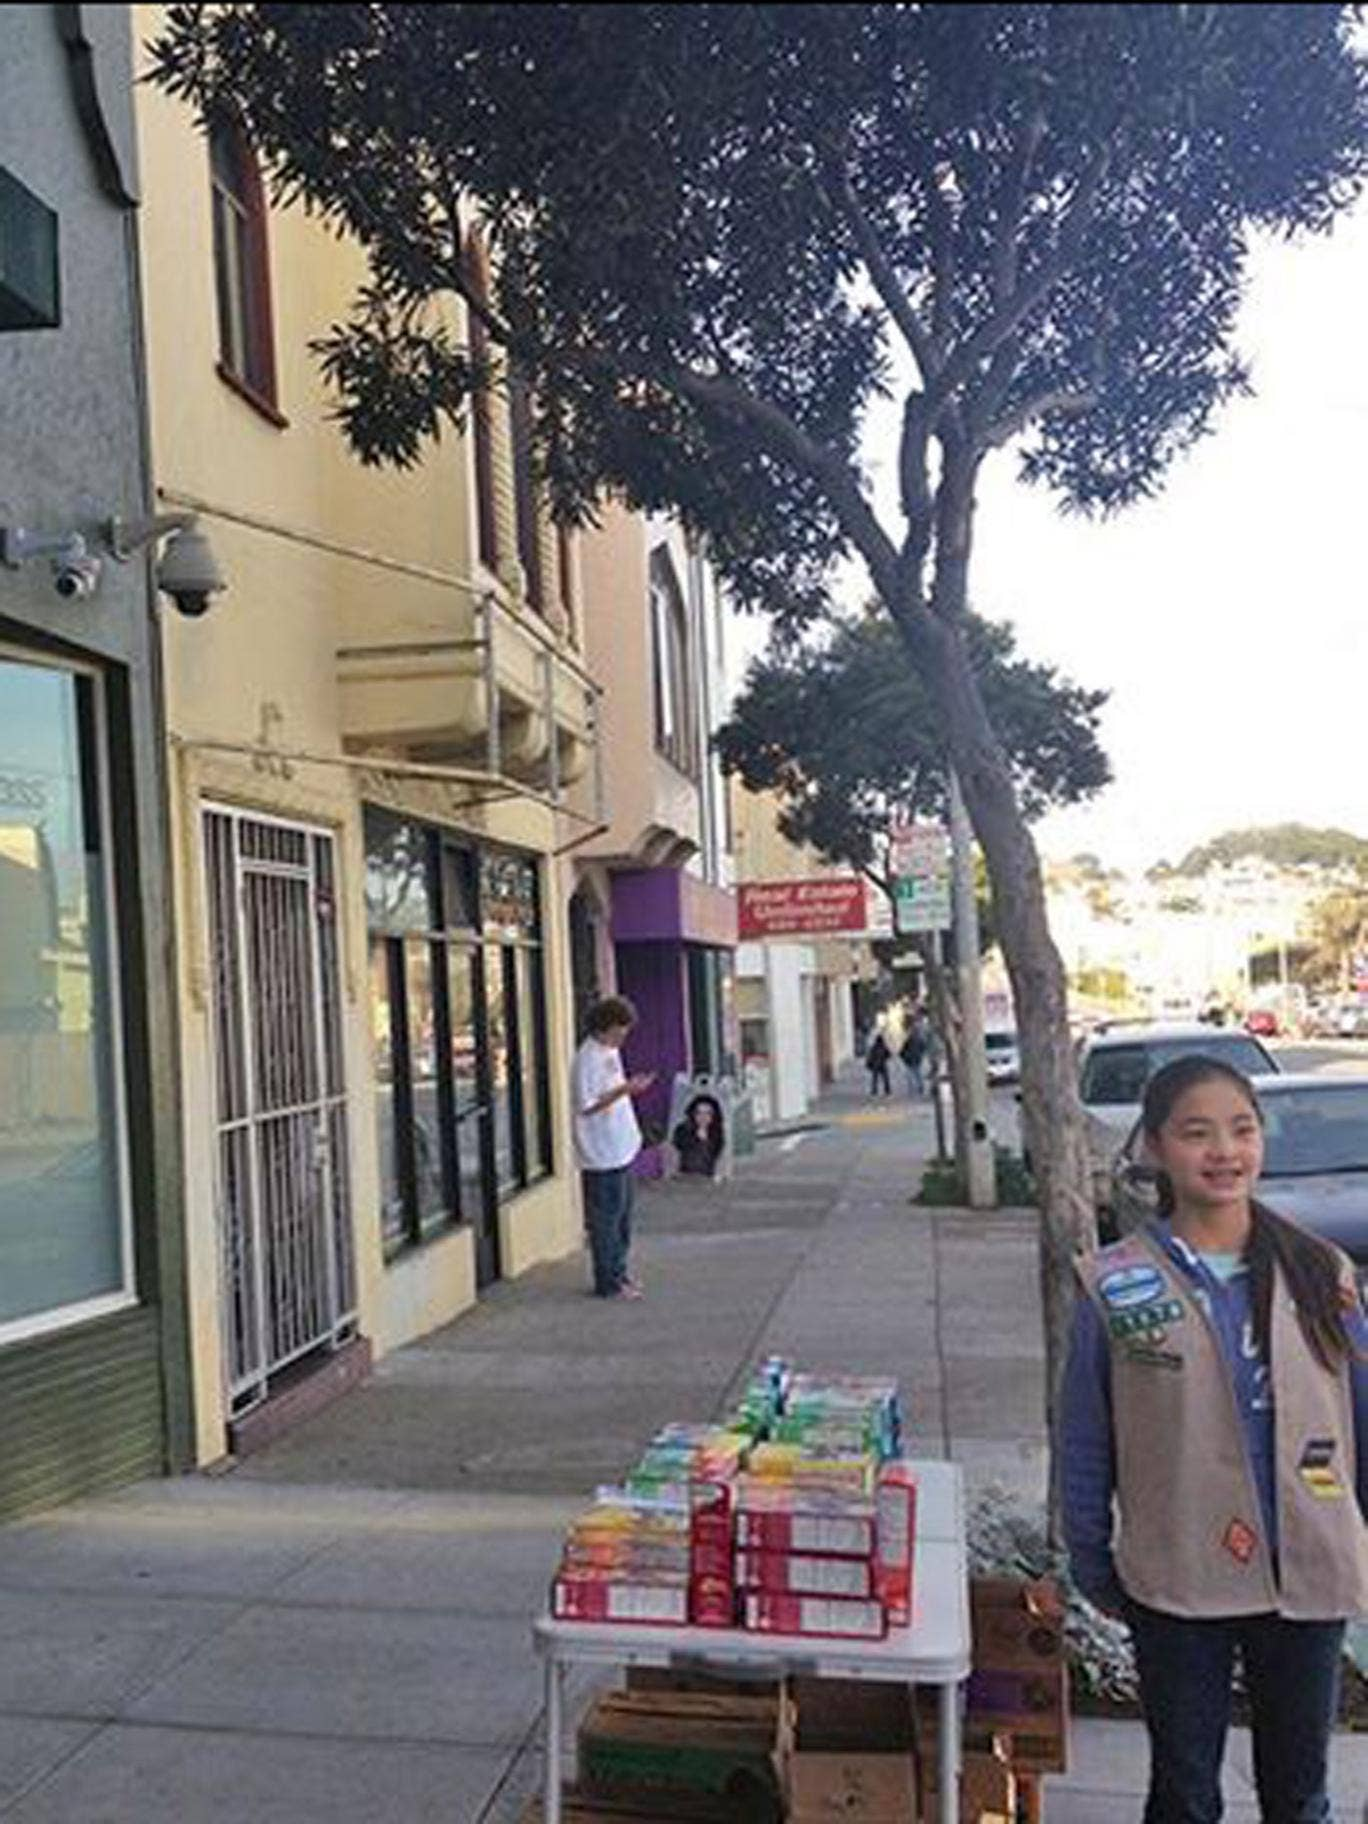 Danielle's choice of location was approved by the Girl Scouts of Northern California, who said it was not up to them to decide where the cookies could be sold